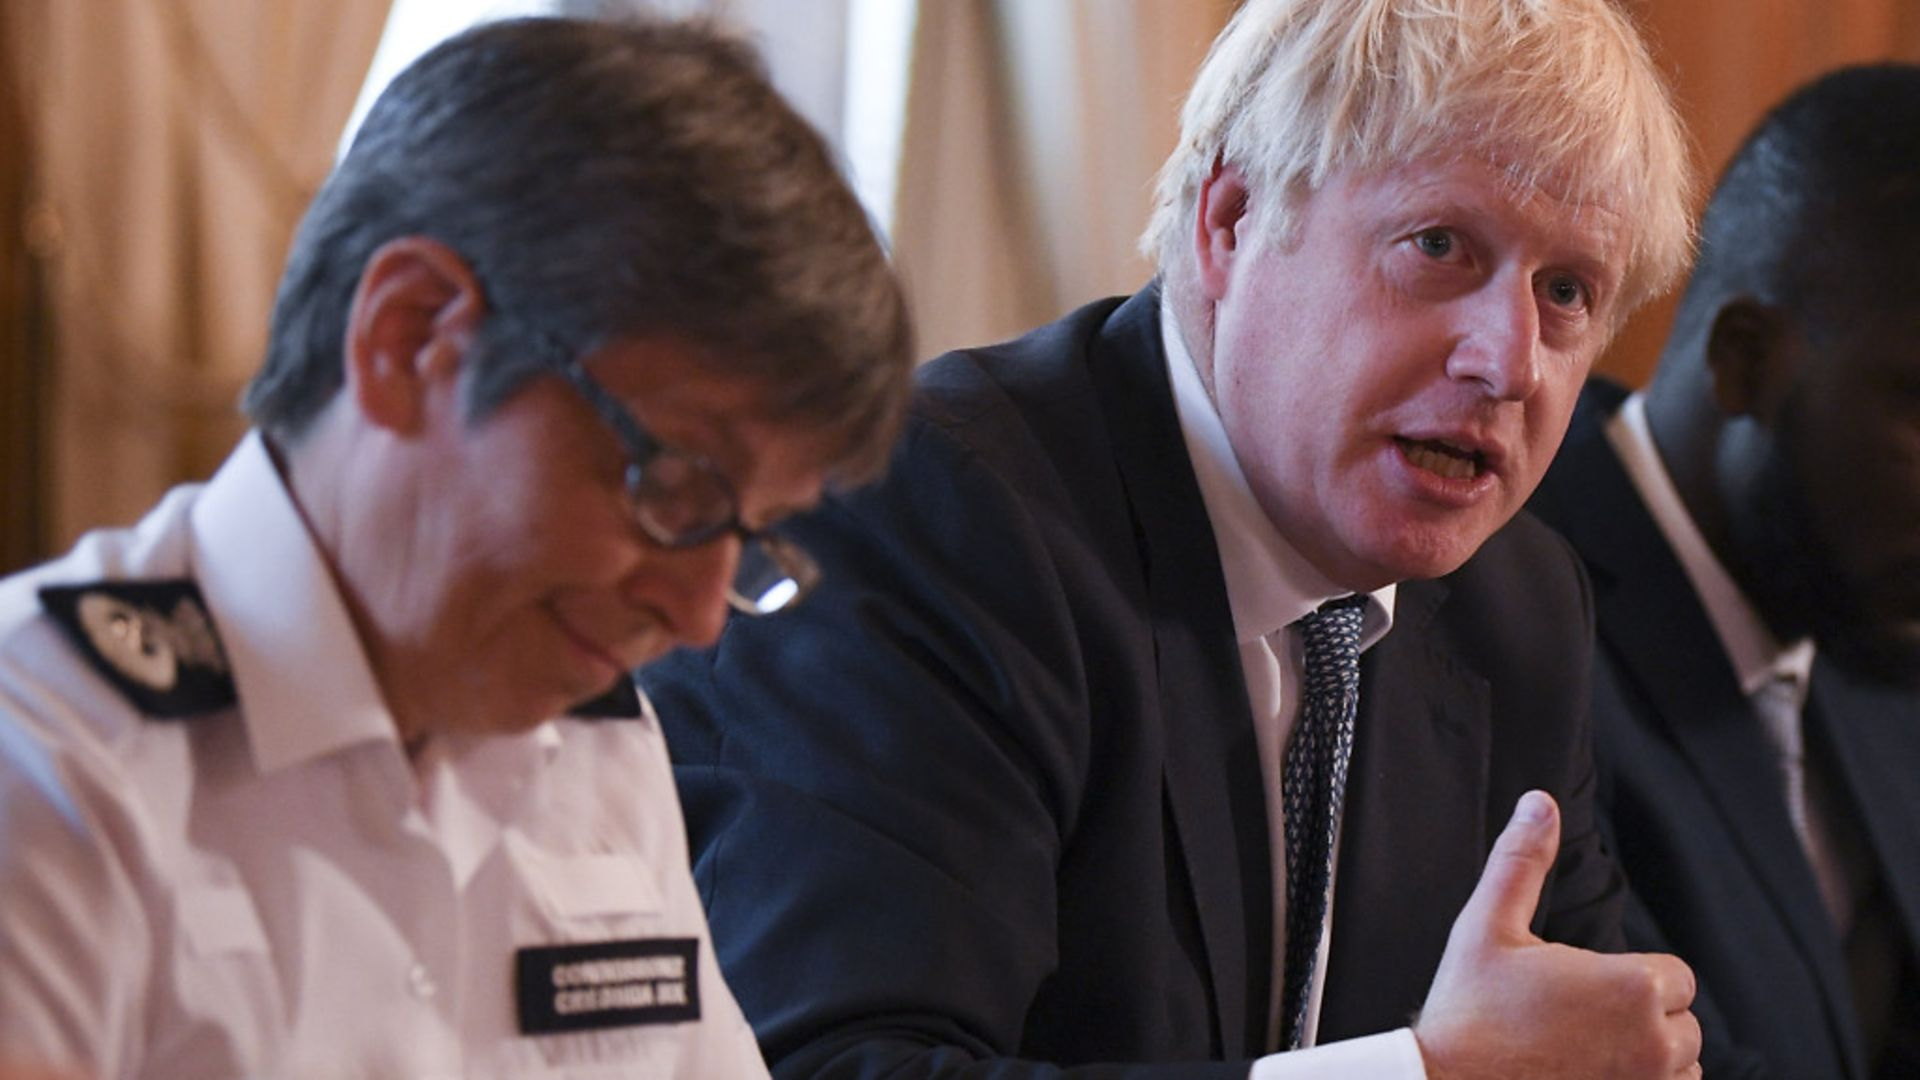 Prime Minister Boris Johnson in Downing Street, with Metropolitan Police Commissioner Cressida Dick - Credit: PA Wire/PA Images